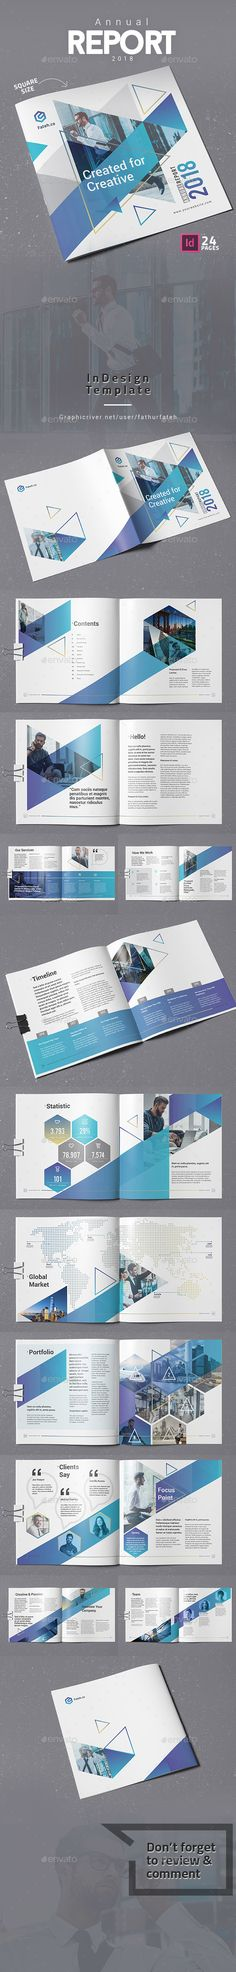 #Annual Report 2018 Square - #Corporate #Brochures